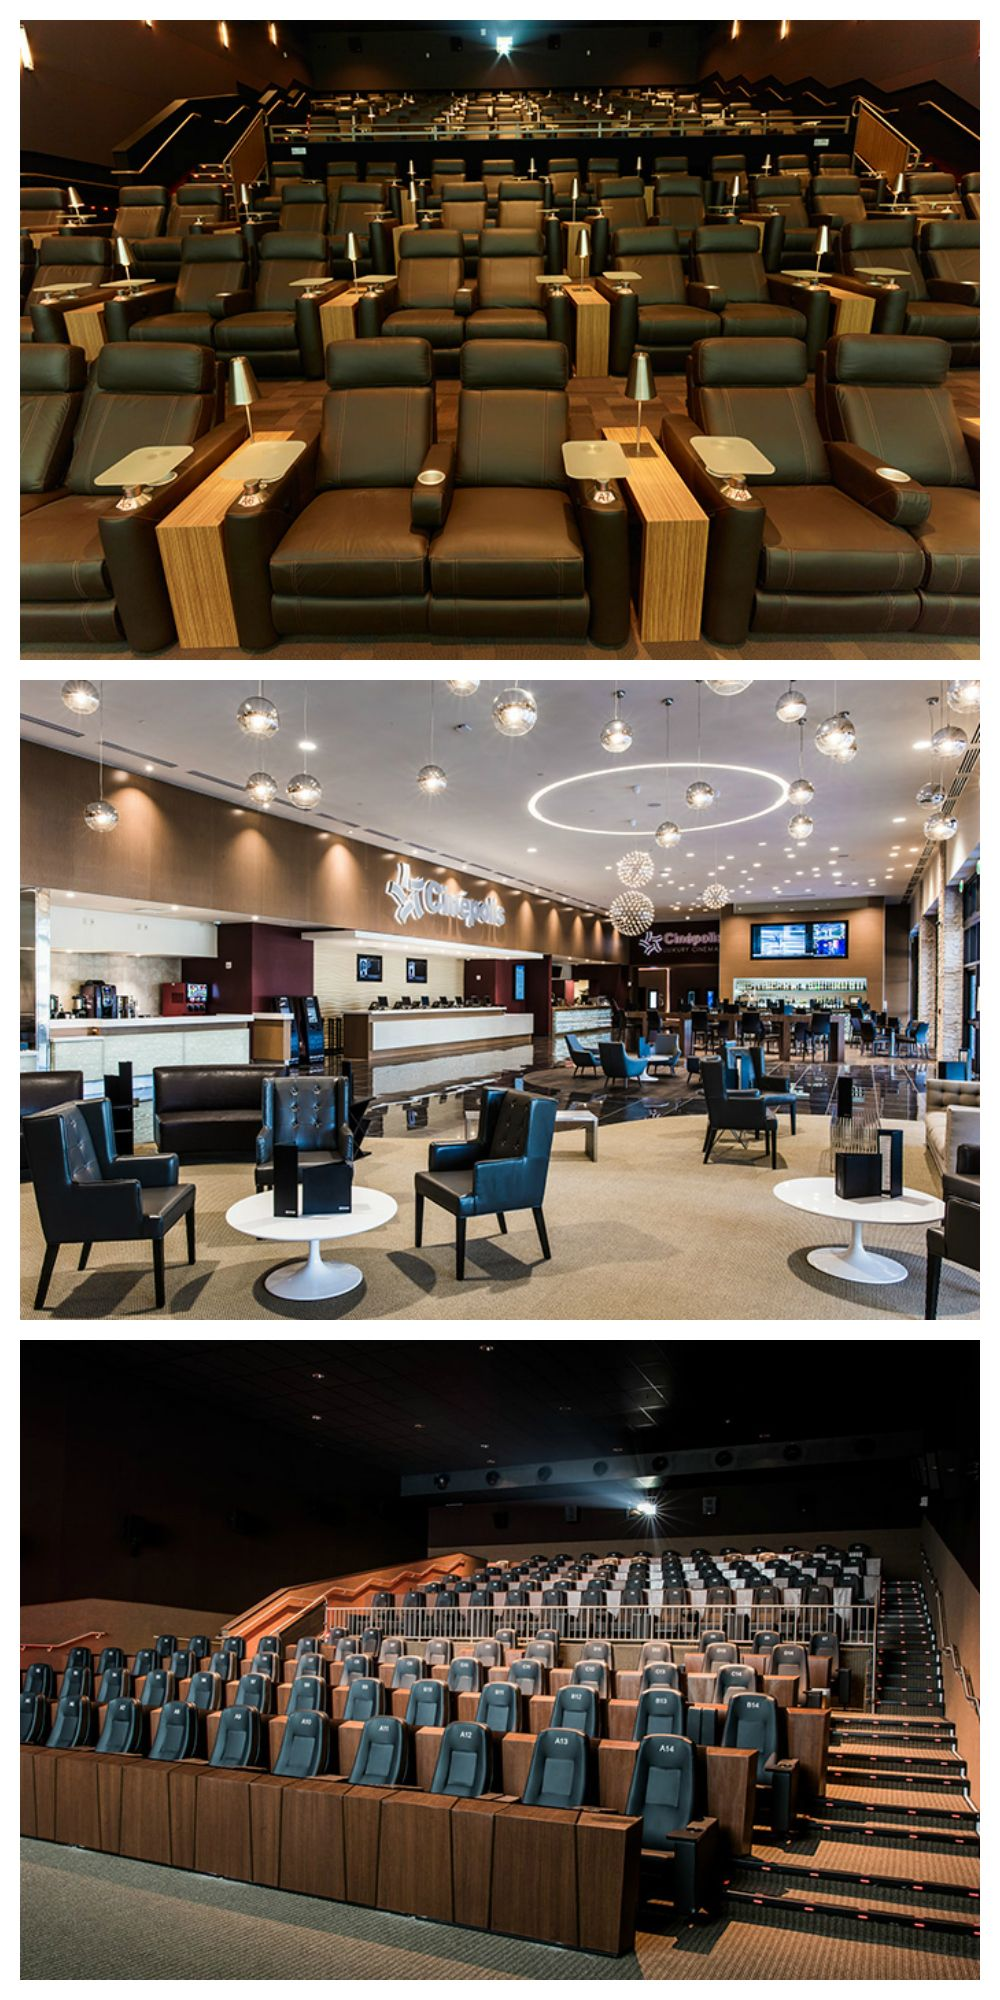 The Shoppes At Jupiter Is Home To Our First Hybrid Location Offering Of Two Unique Auditorium Concepts I Home Cinema Room Home Theater Room Design Cinema Idea